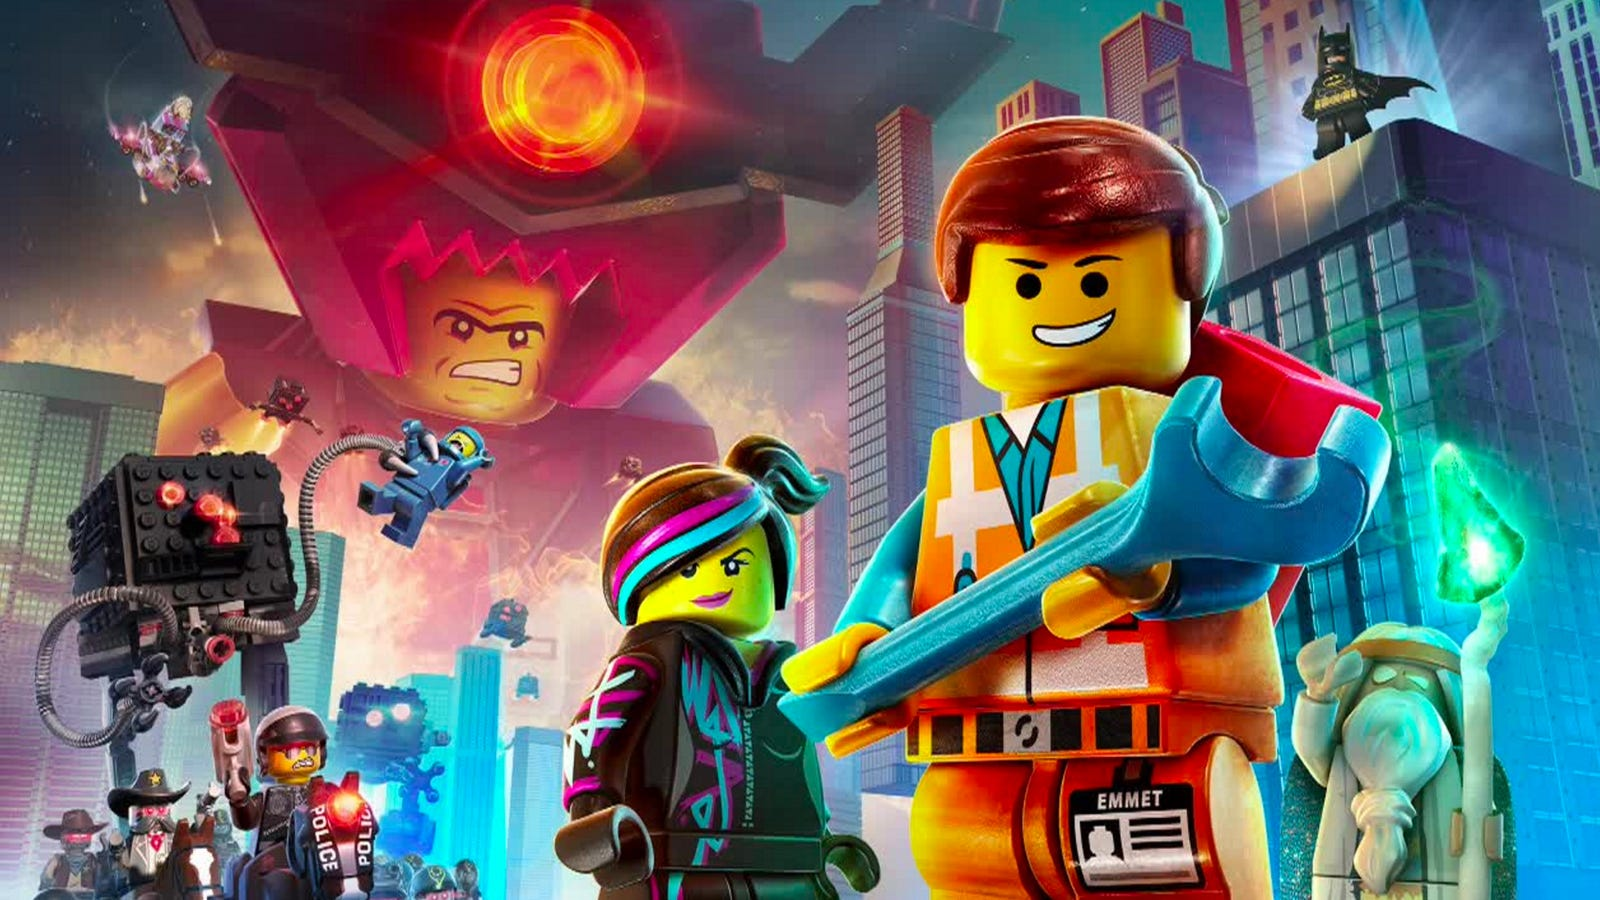 Pictures From The Lego Movie